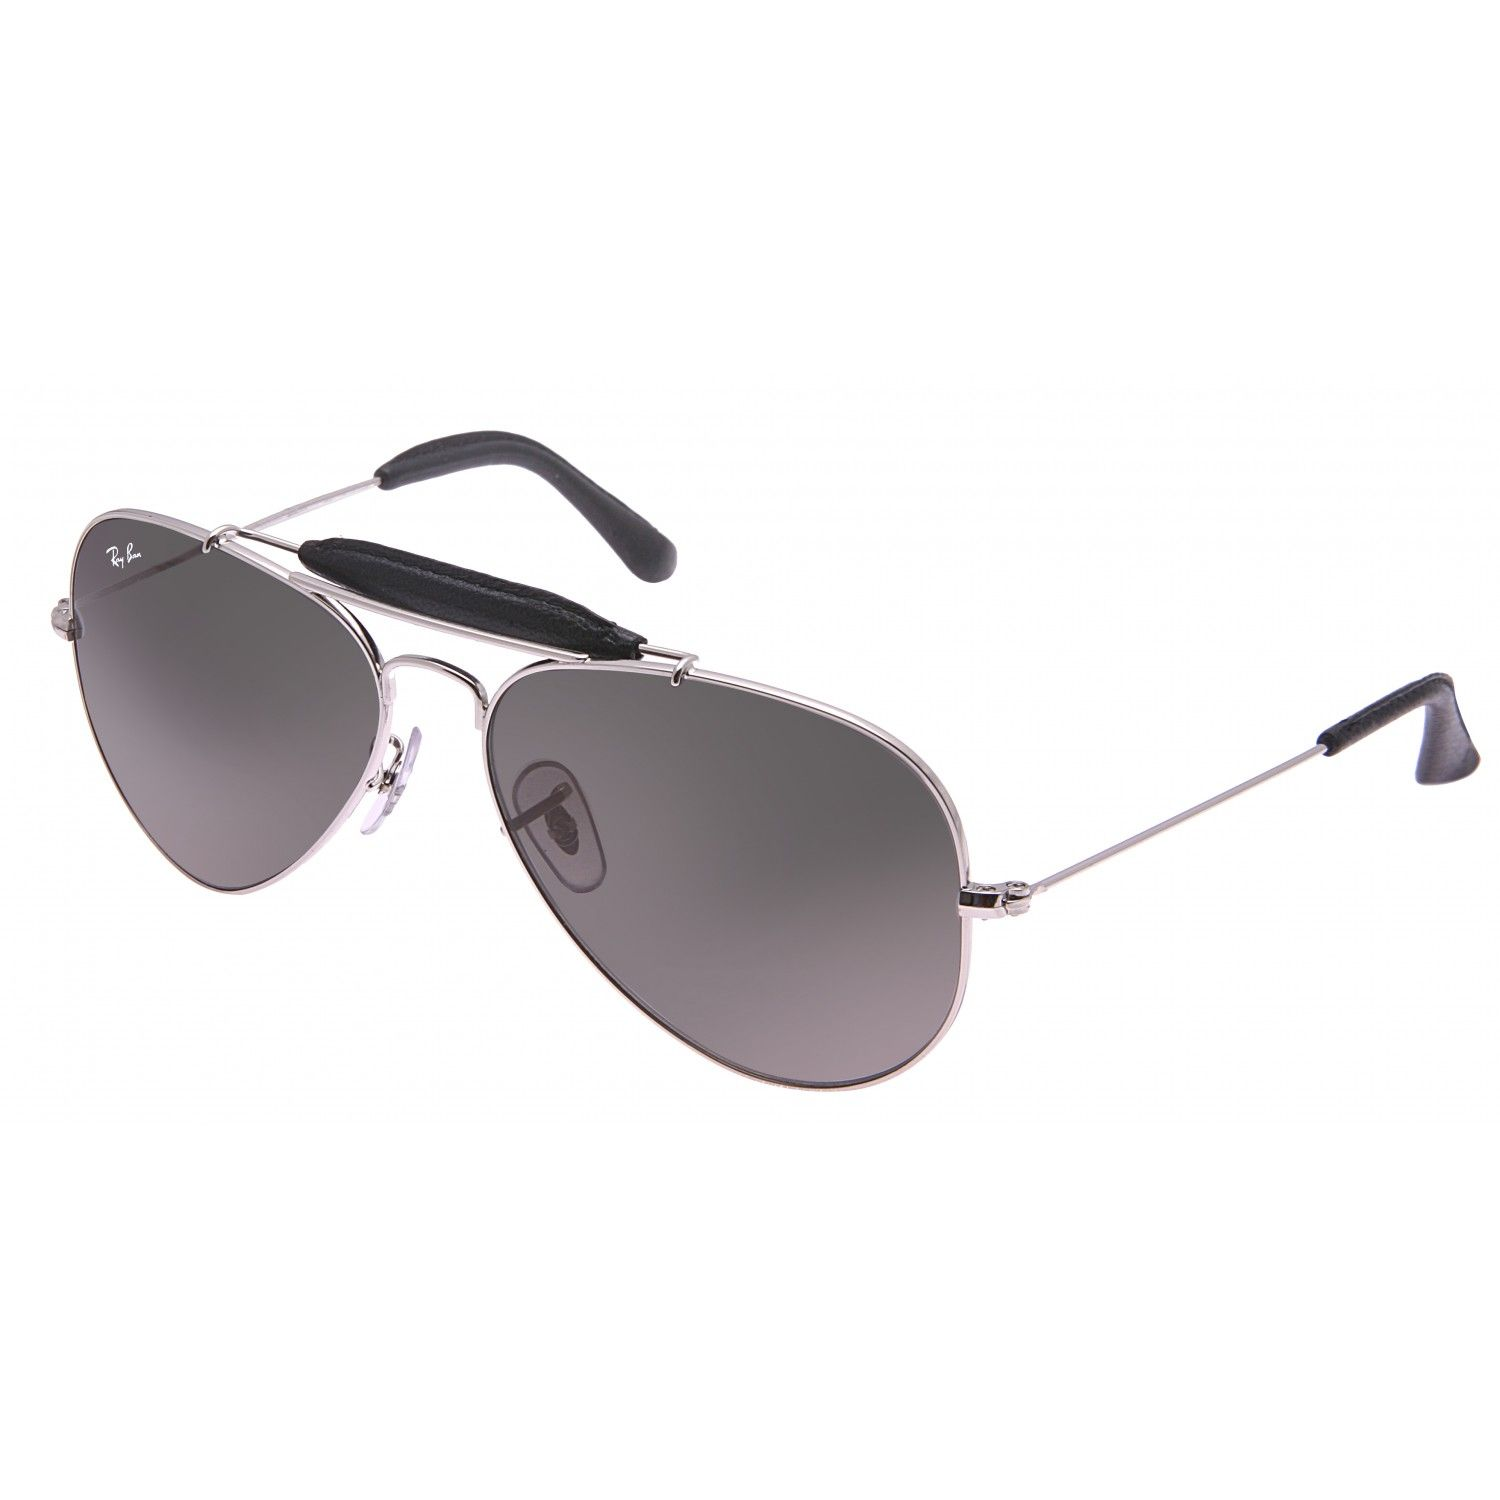 9170d24ceea Best Deal On Ray Ban Sunglasses « One More Soul